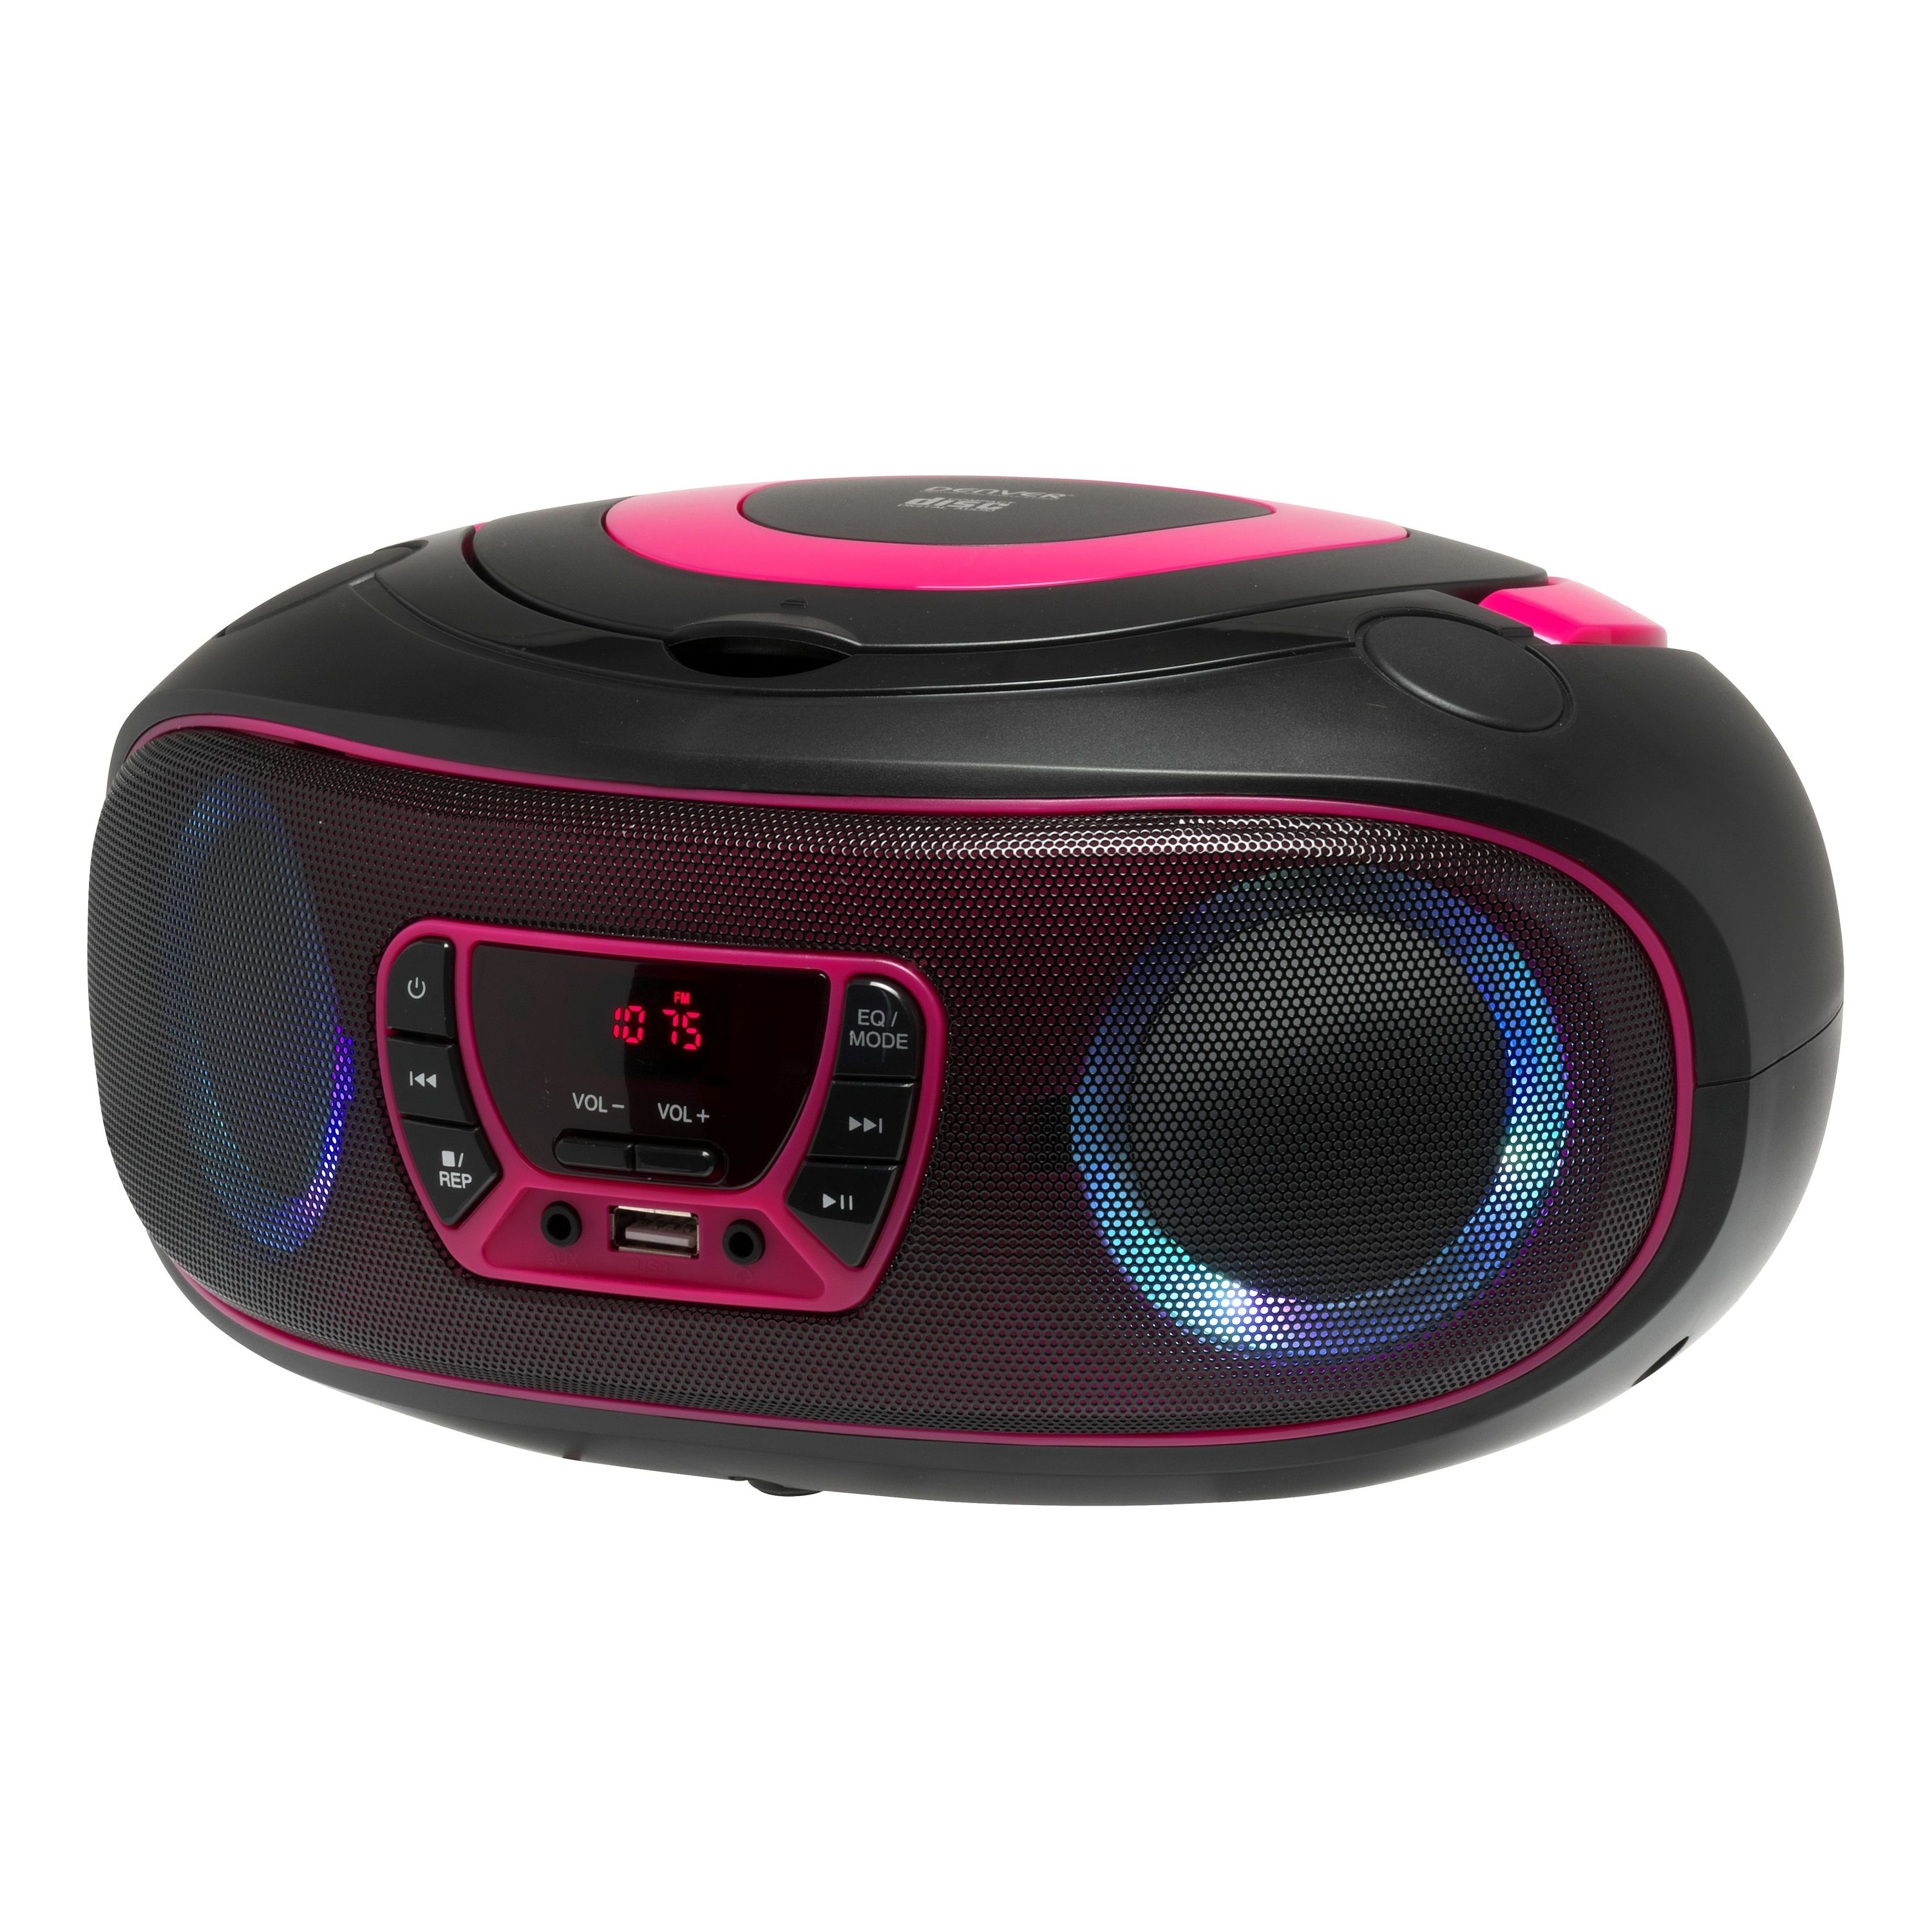 boombox mit cd player radio usb bluetooth mp3 aux denver. Black Bedroom Furniture Sets. Home Design Ideas